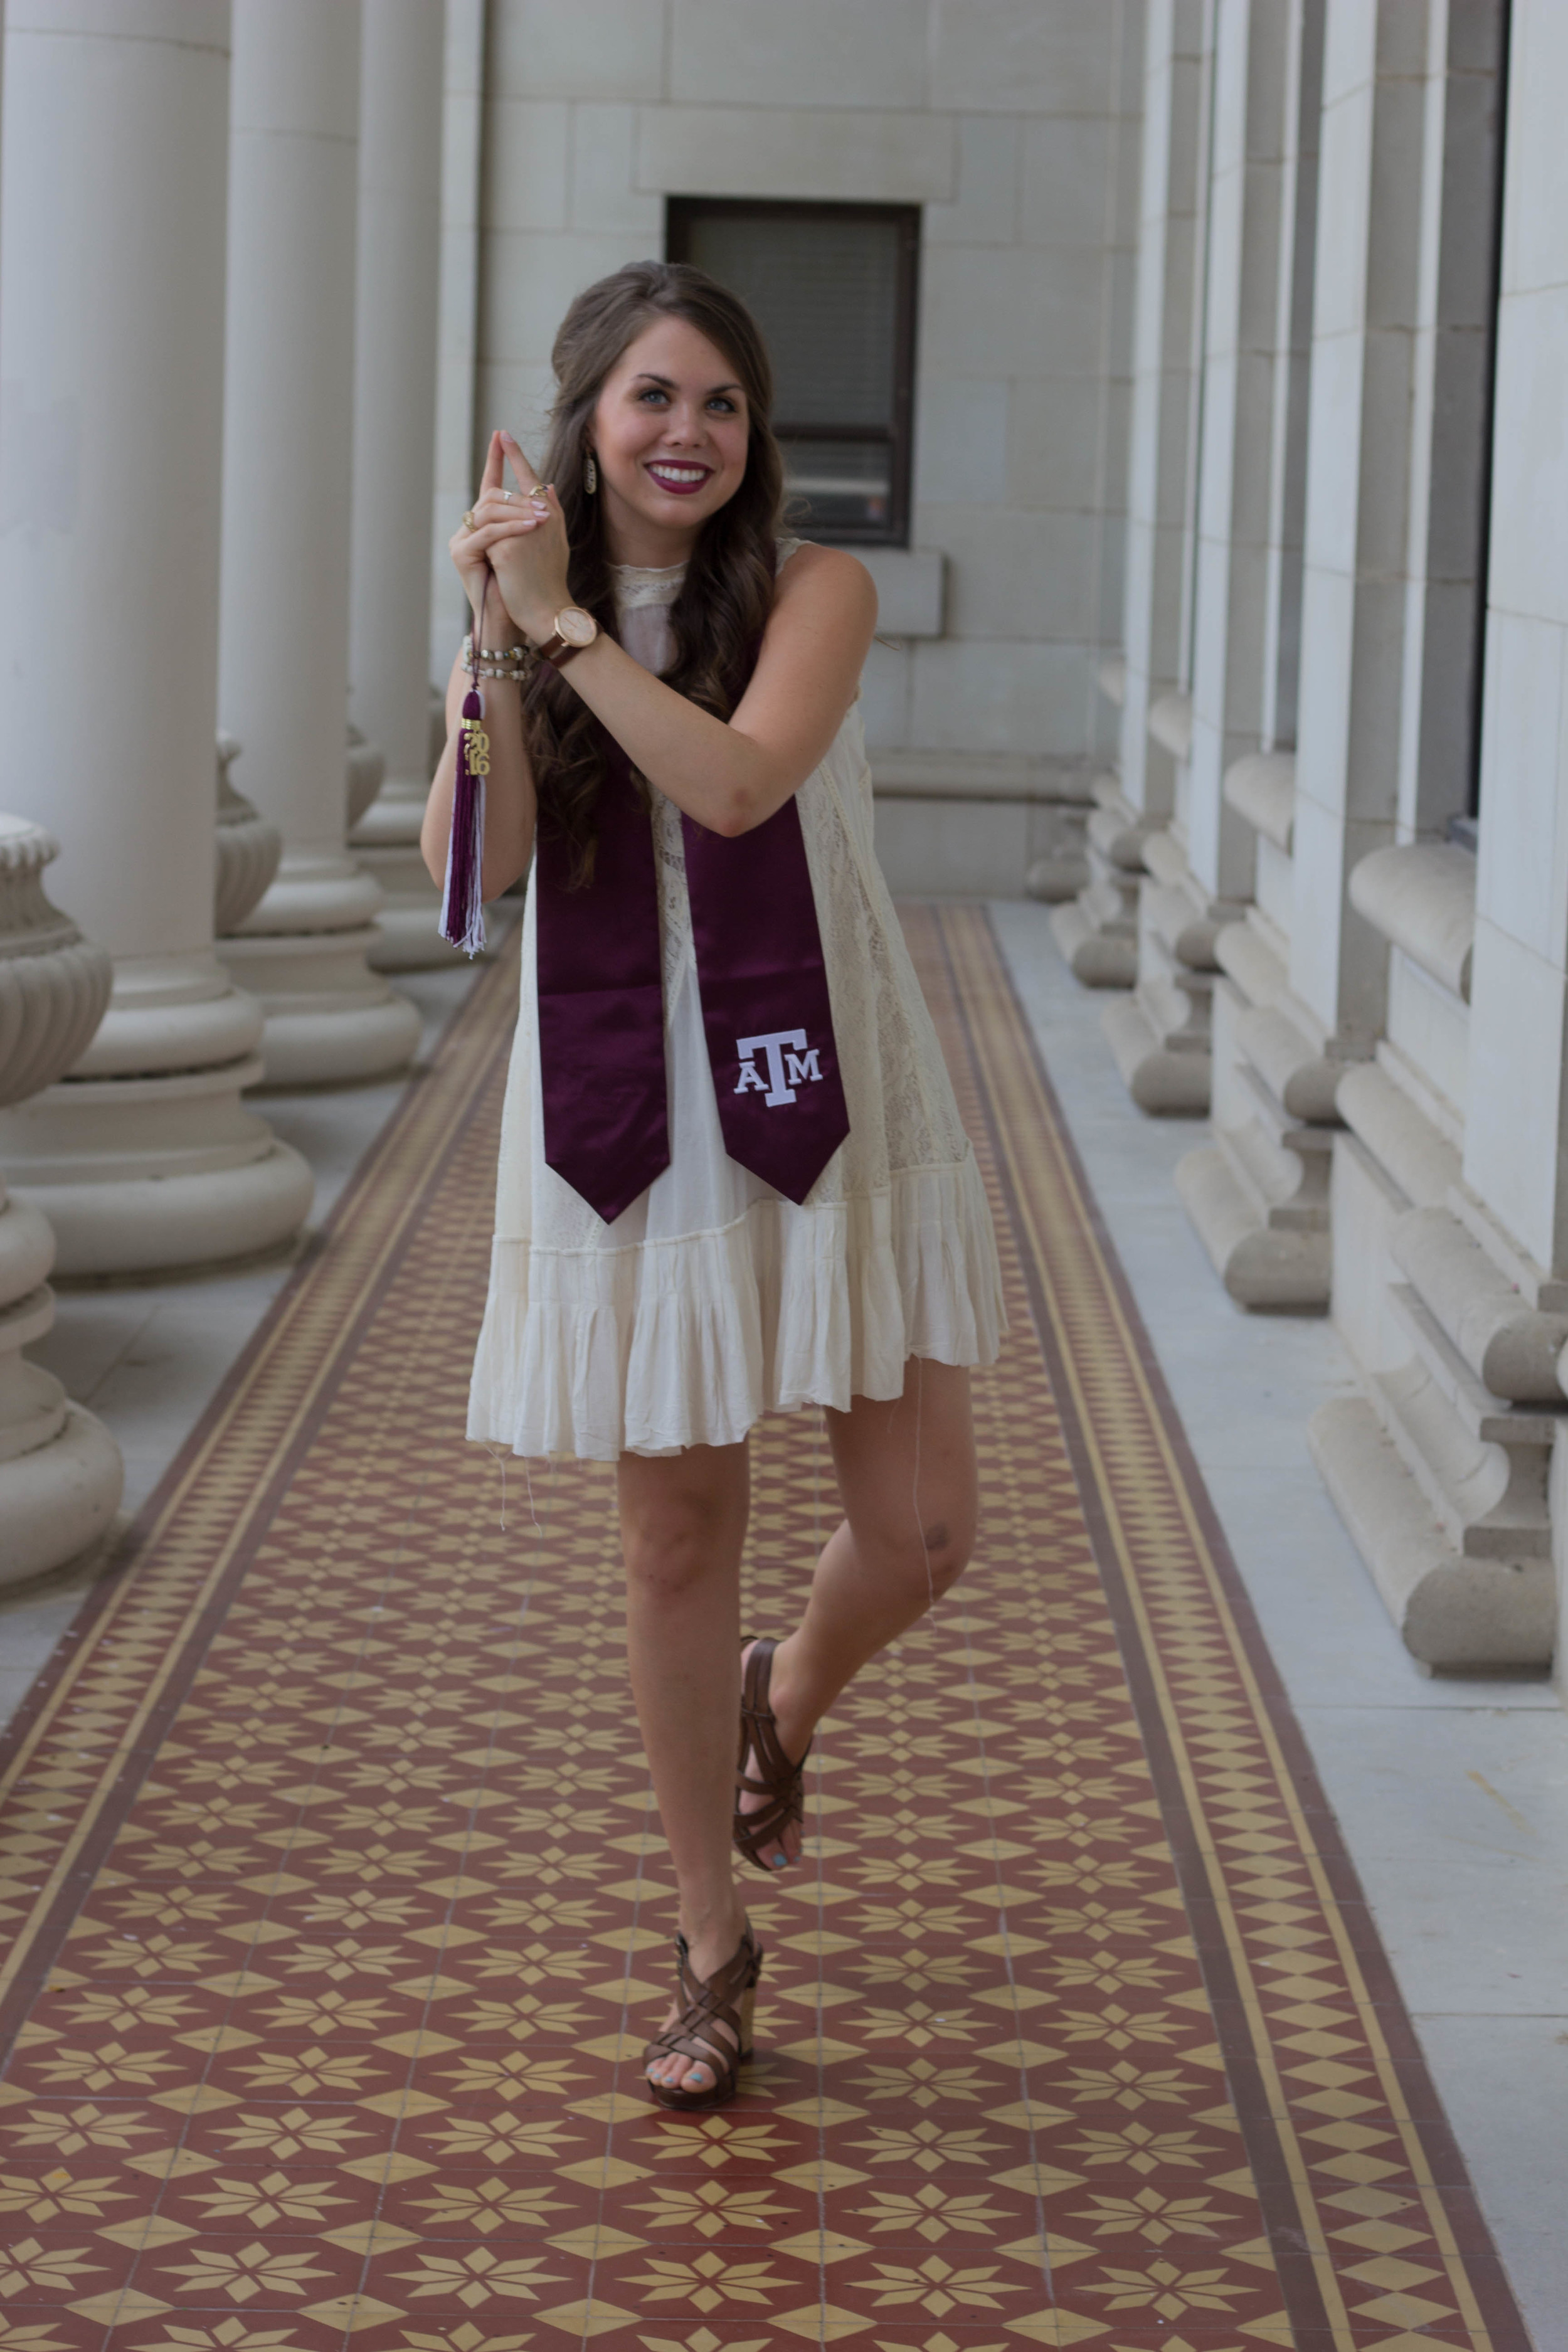 free people lace swing dress, college station, things to do in college station bryan, kendra scott earrings, hullabaloo, aggies